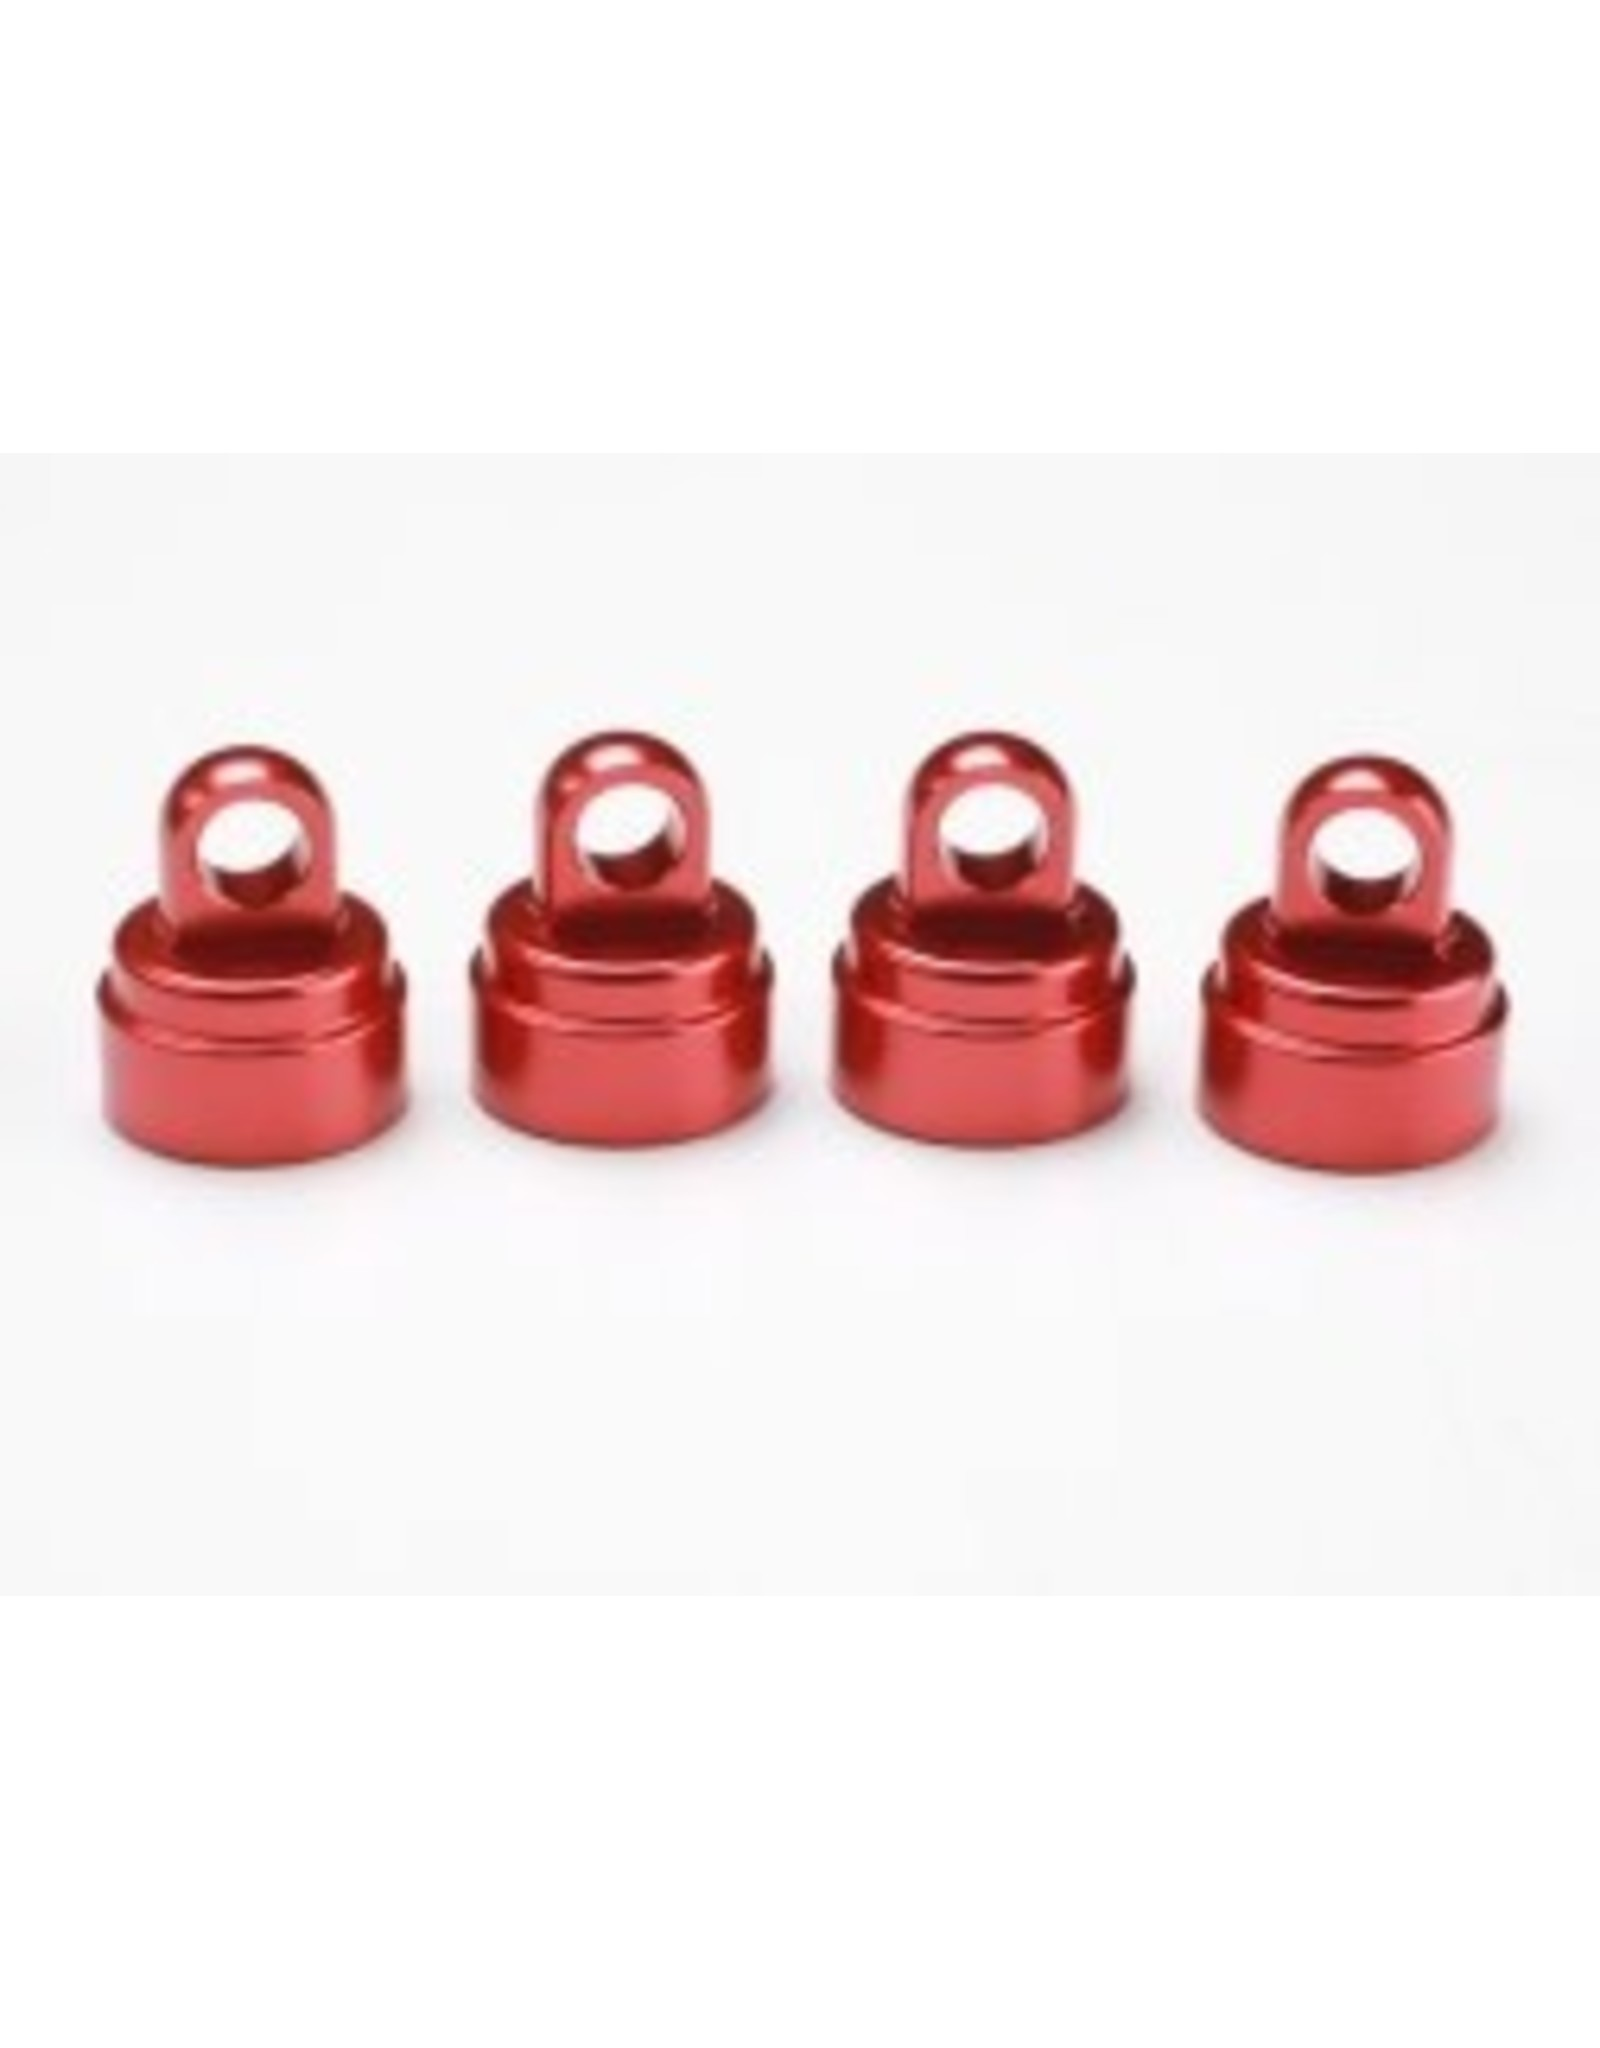 Traxxas Aluminum Shock Caps, Red (4): Ultra Shocks  (TRA3767X)